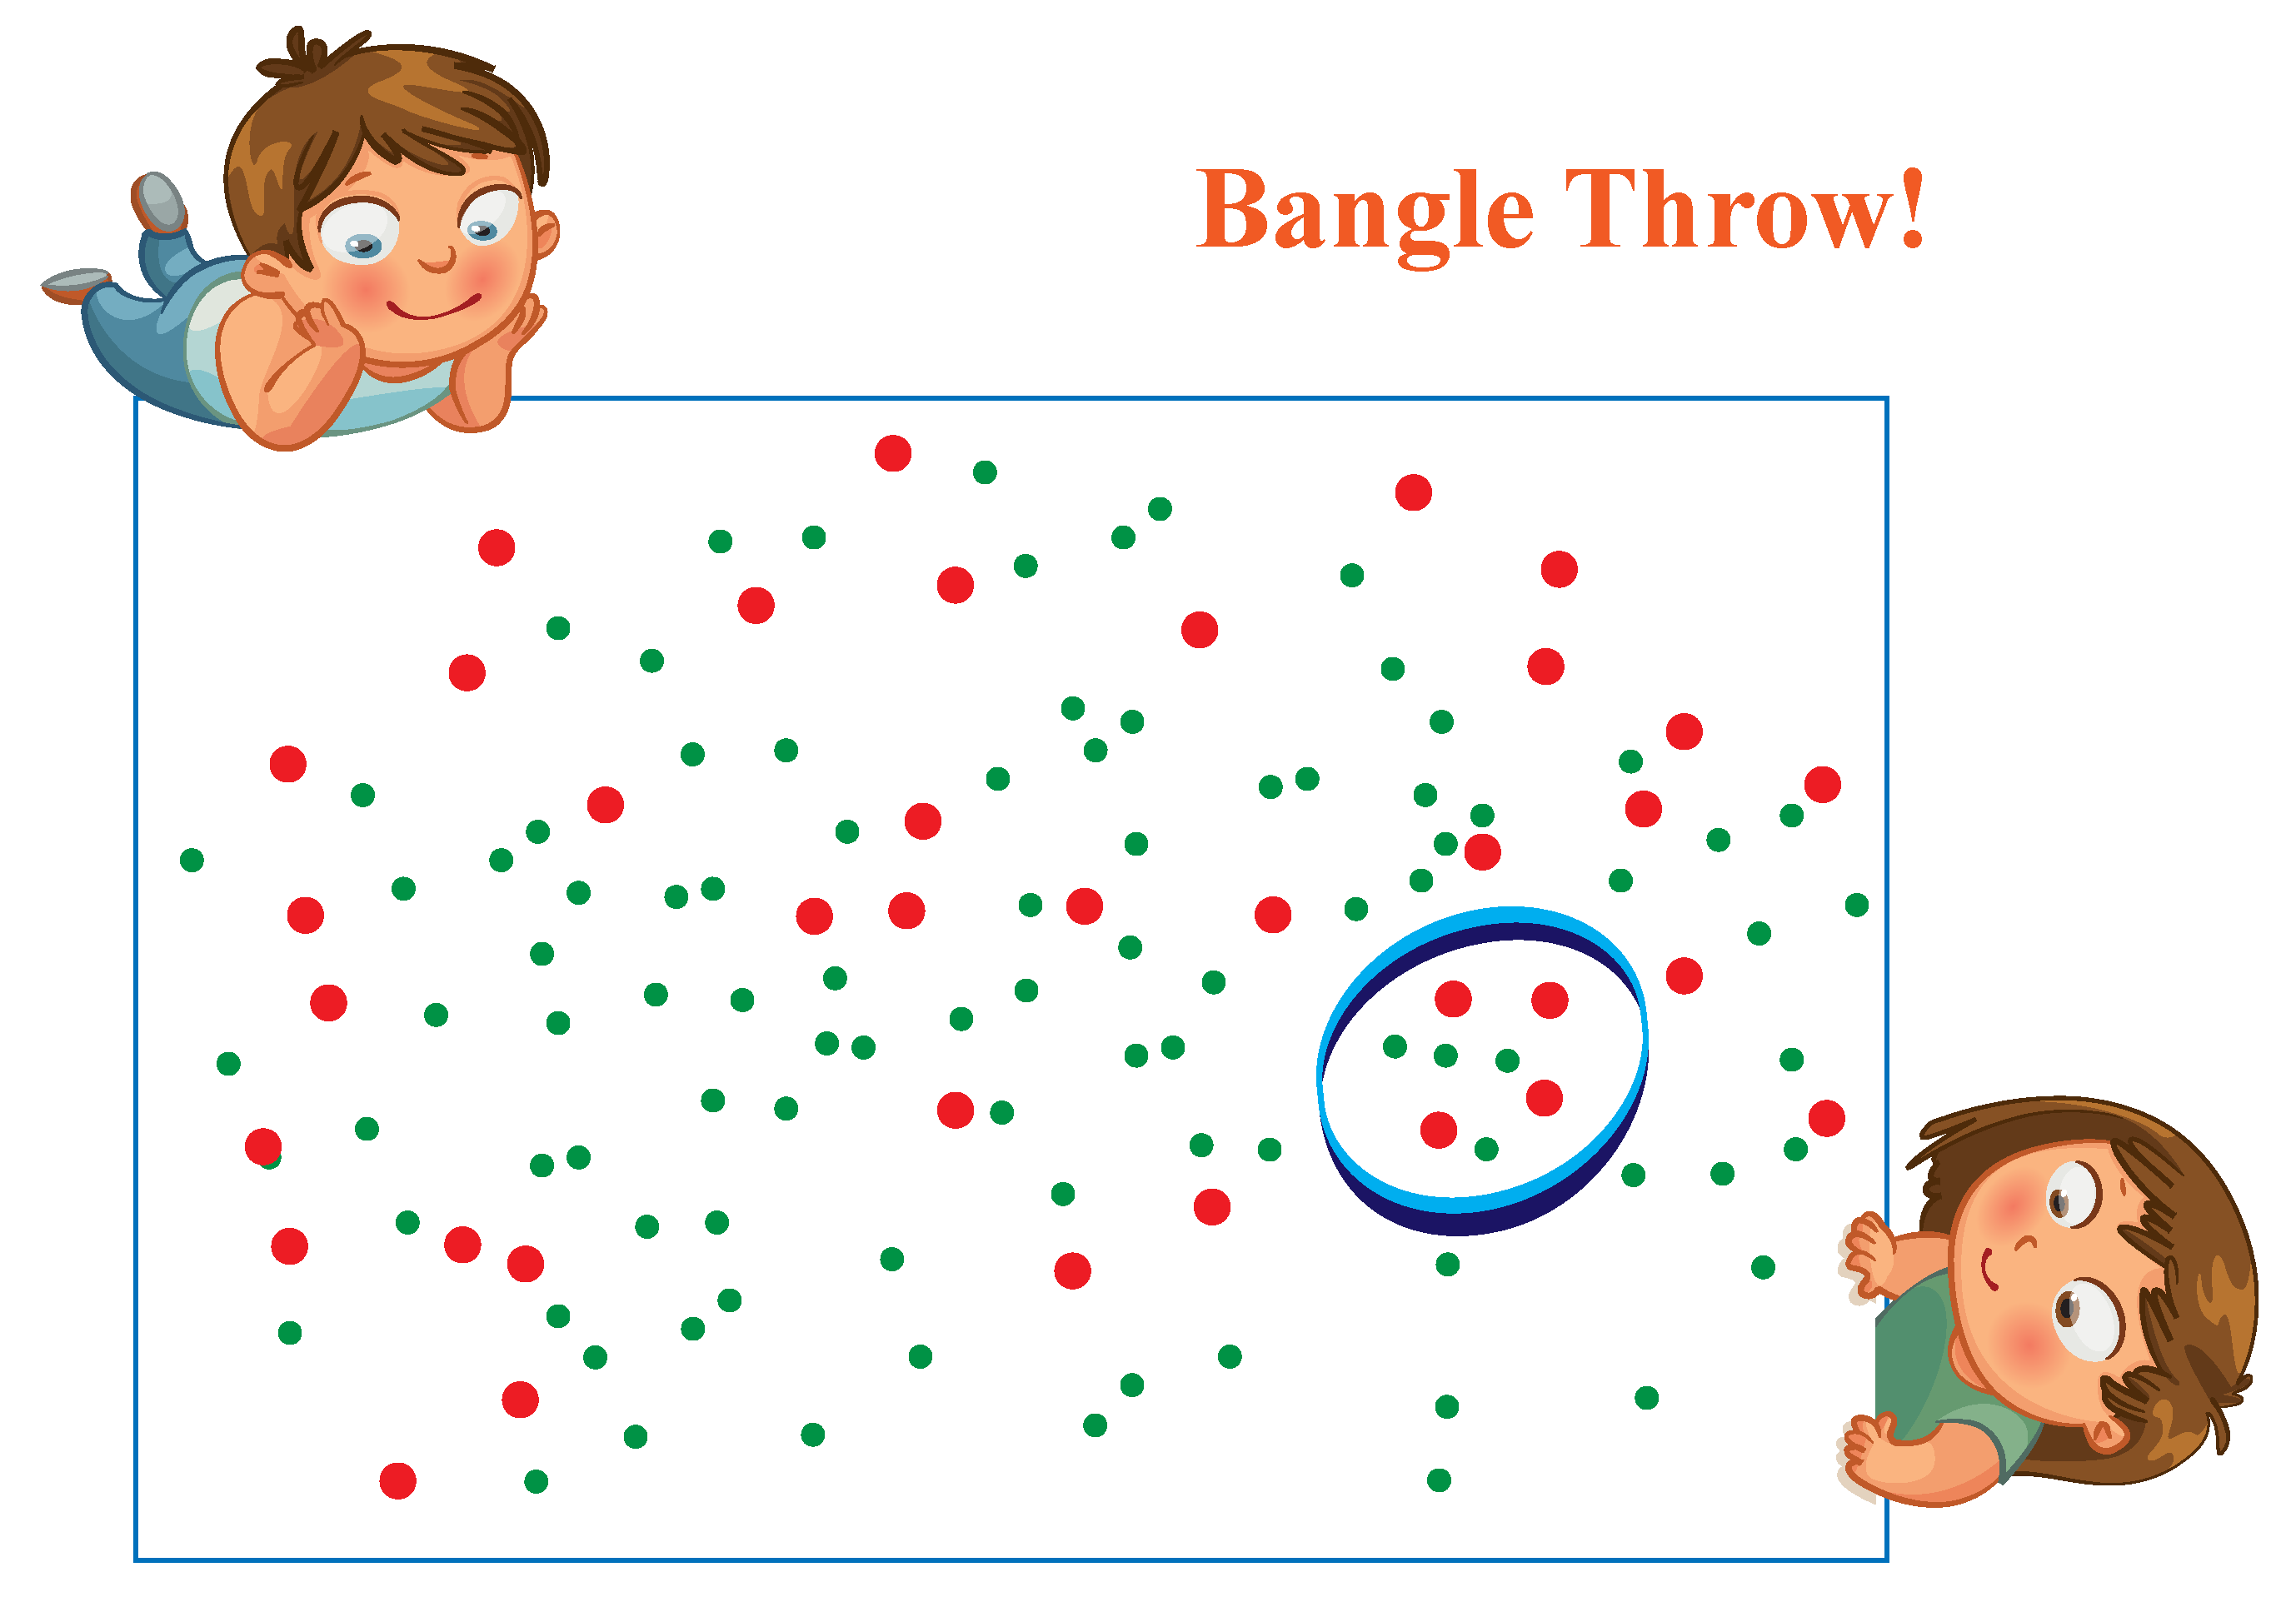 Example for number in words: Jack and Ginny play the bangle game and count the dots inside the bangle.